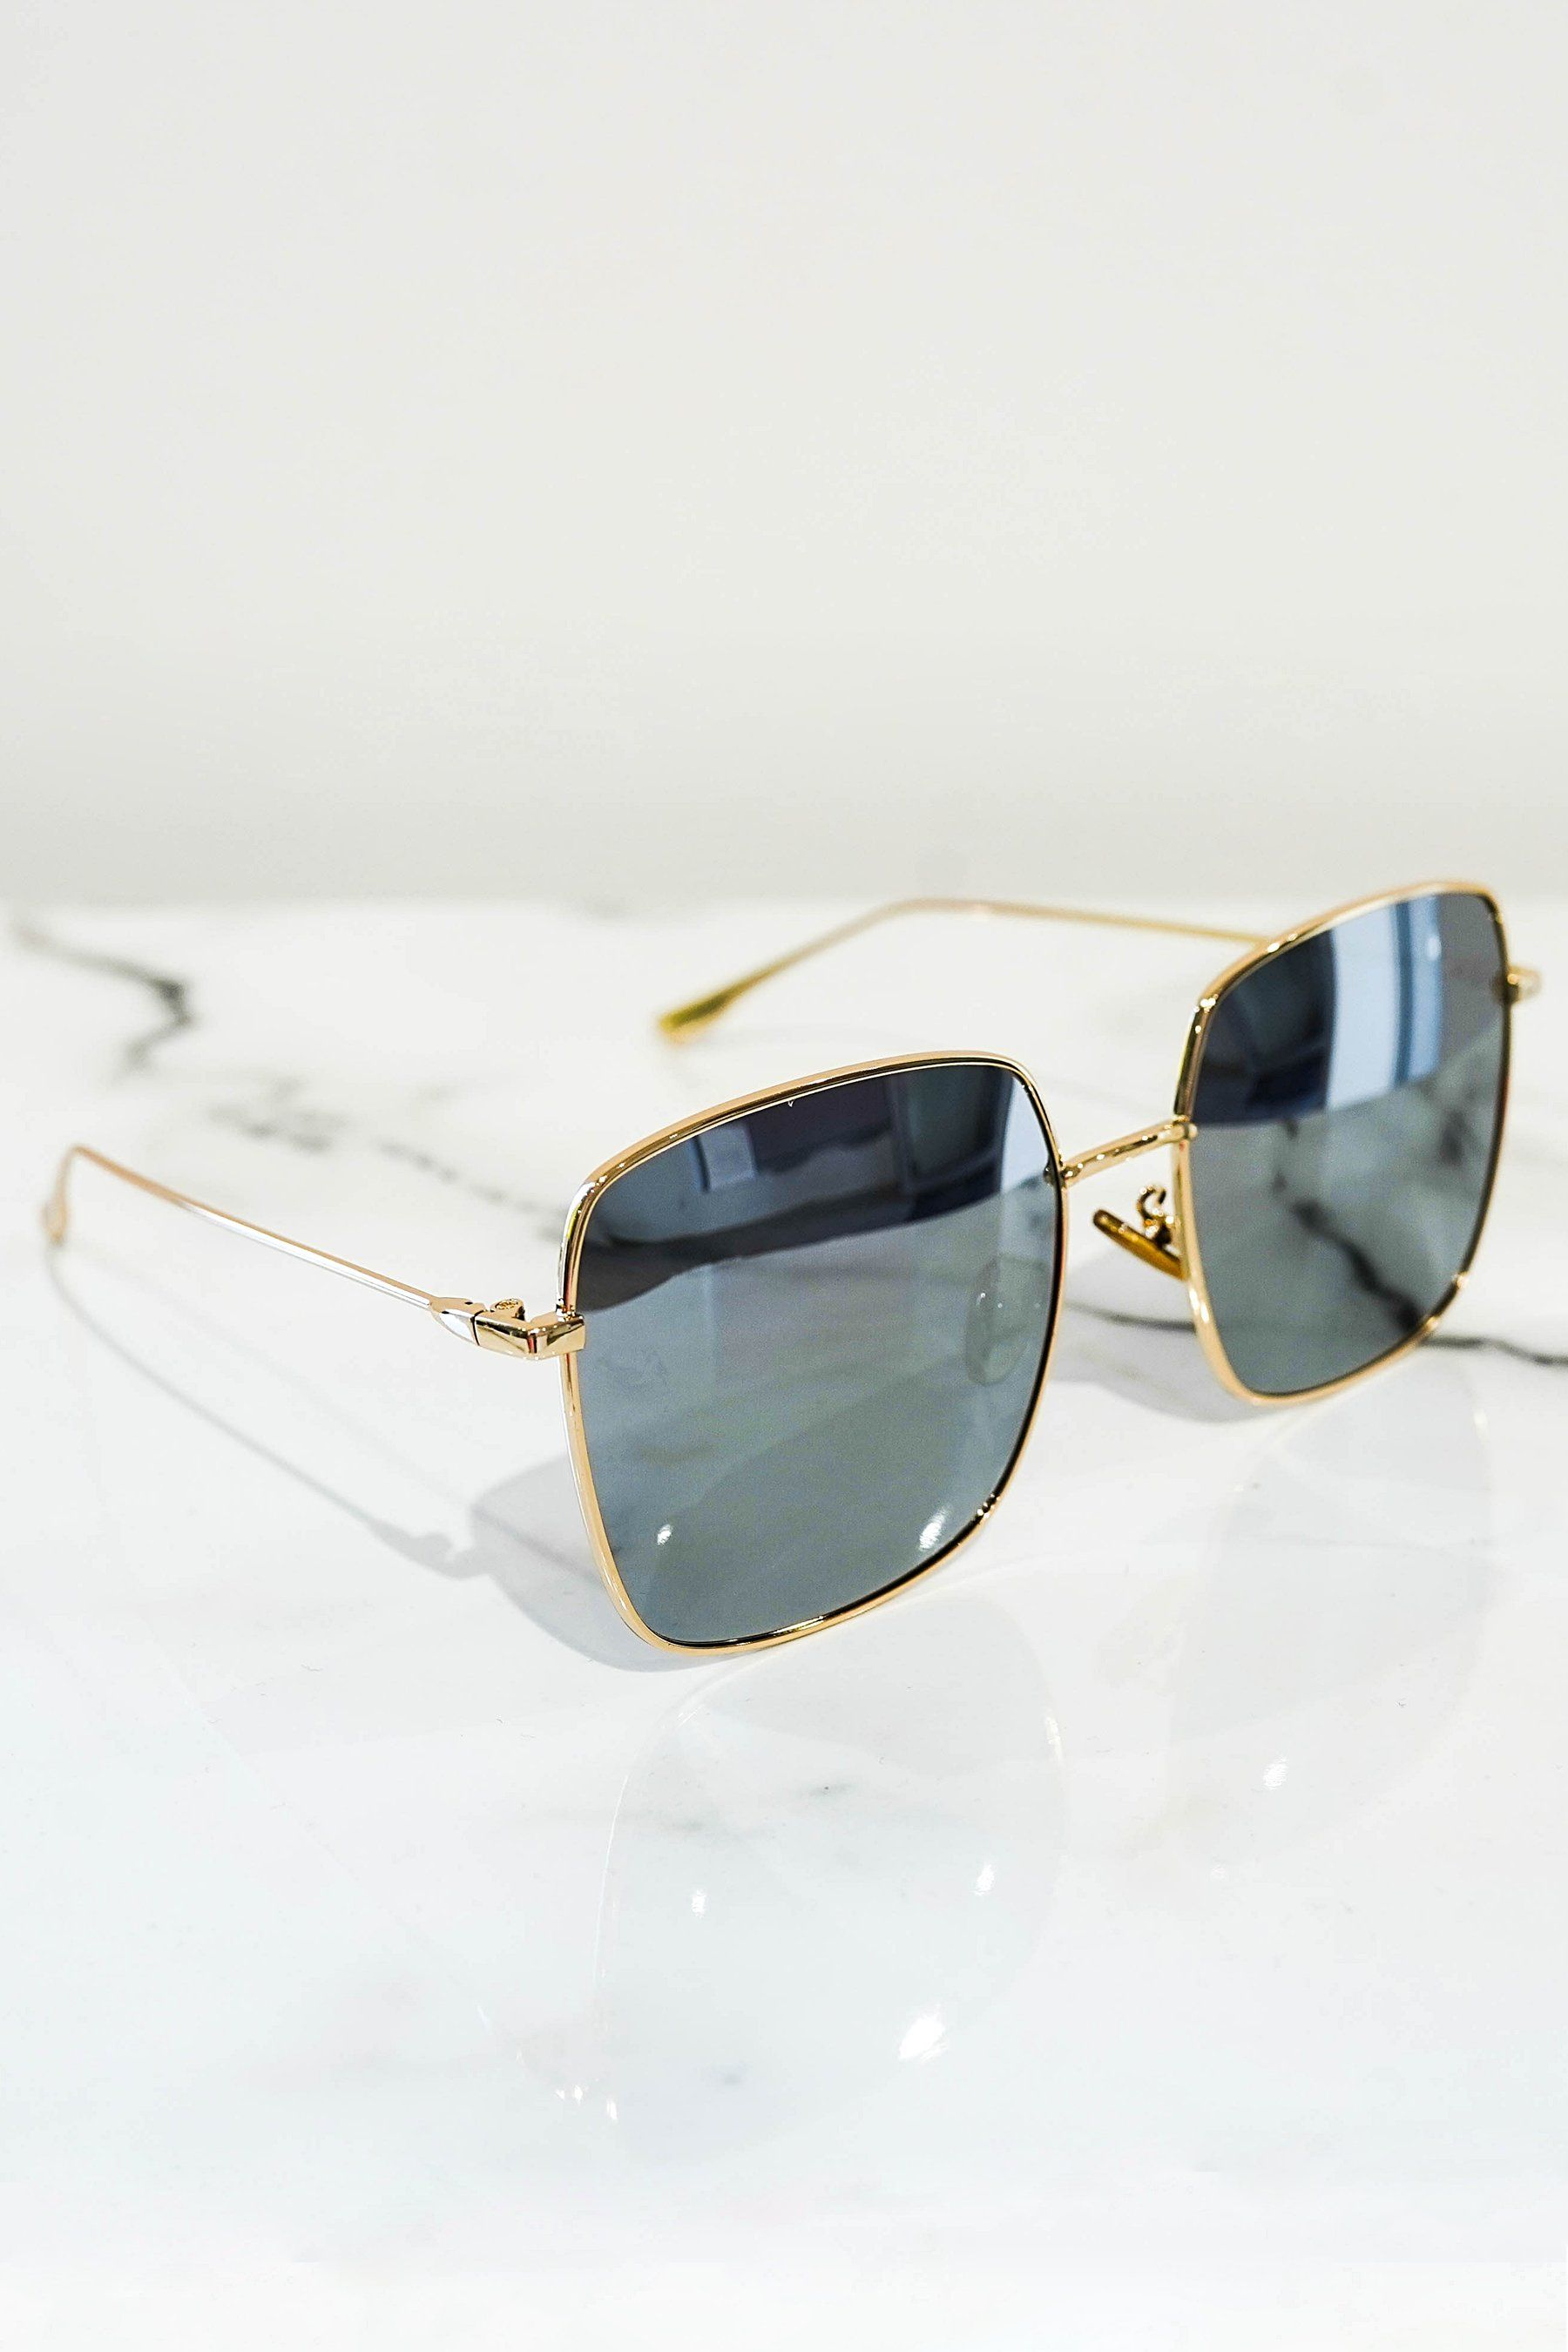 Squared sunglasses gold With mirrored lens - PEGADOR - Dominate the Hype